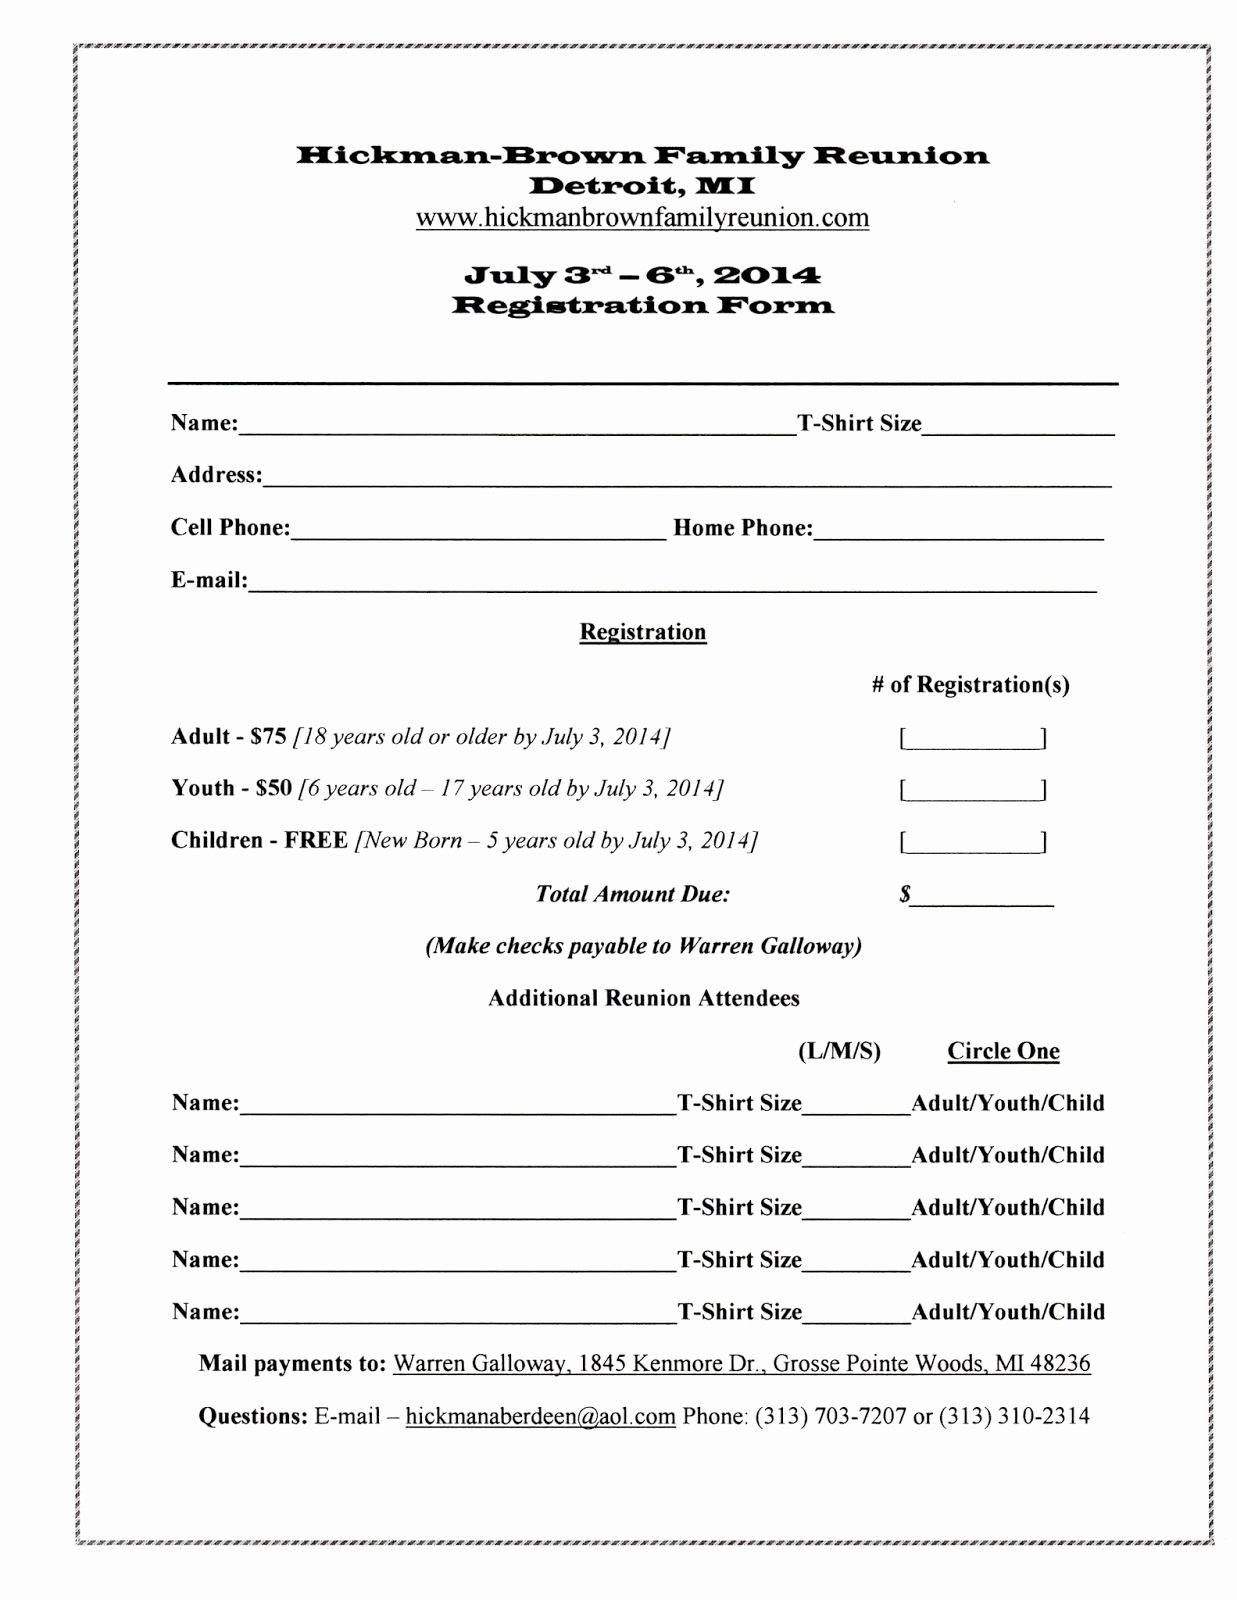 Printable Registration form Template Elegant Family Reunion Registration form Template